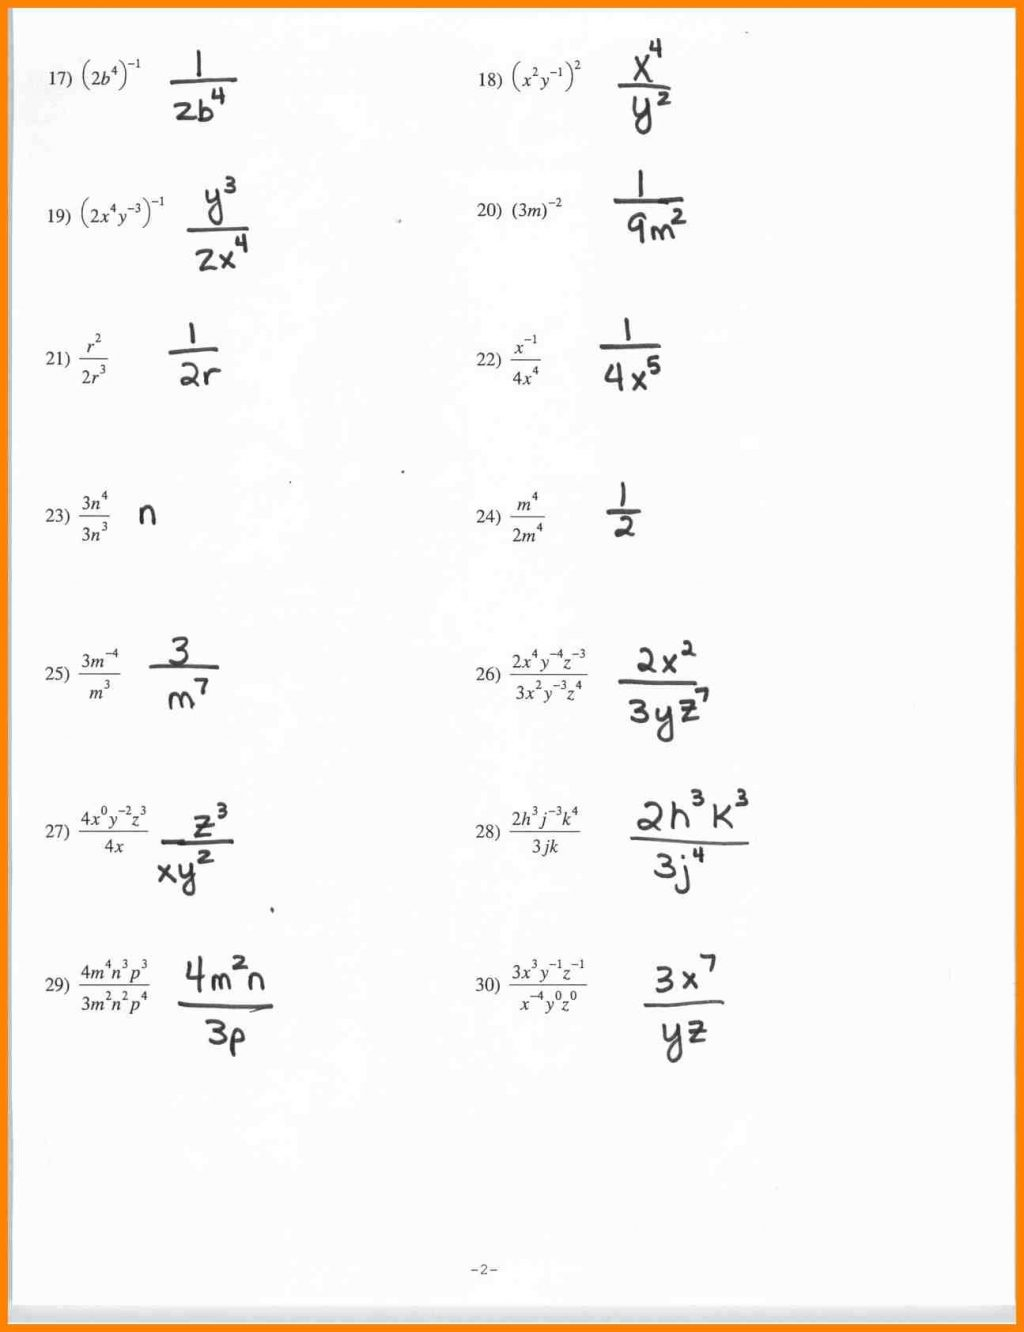 Practice Division Properties Of Exponents Worksheetrs Property